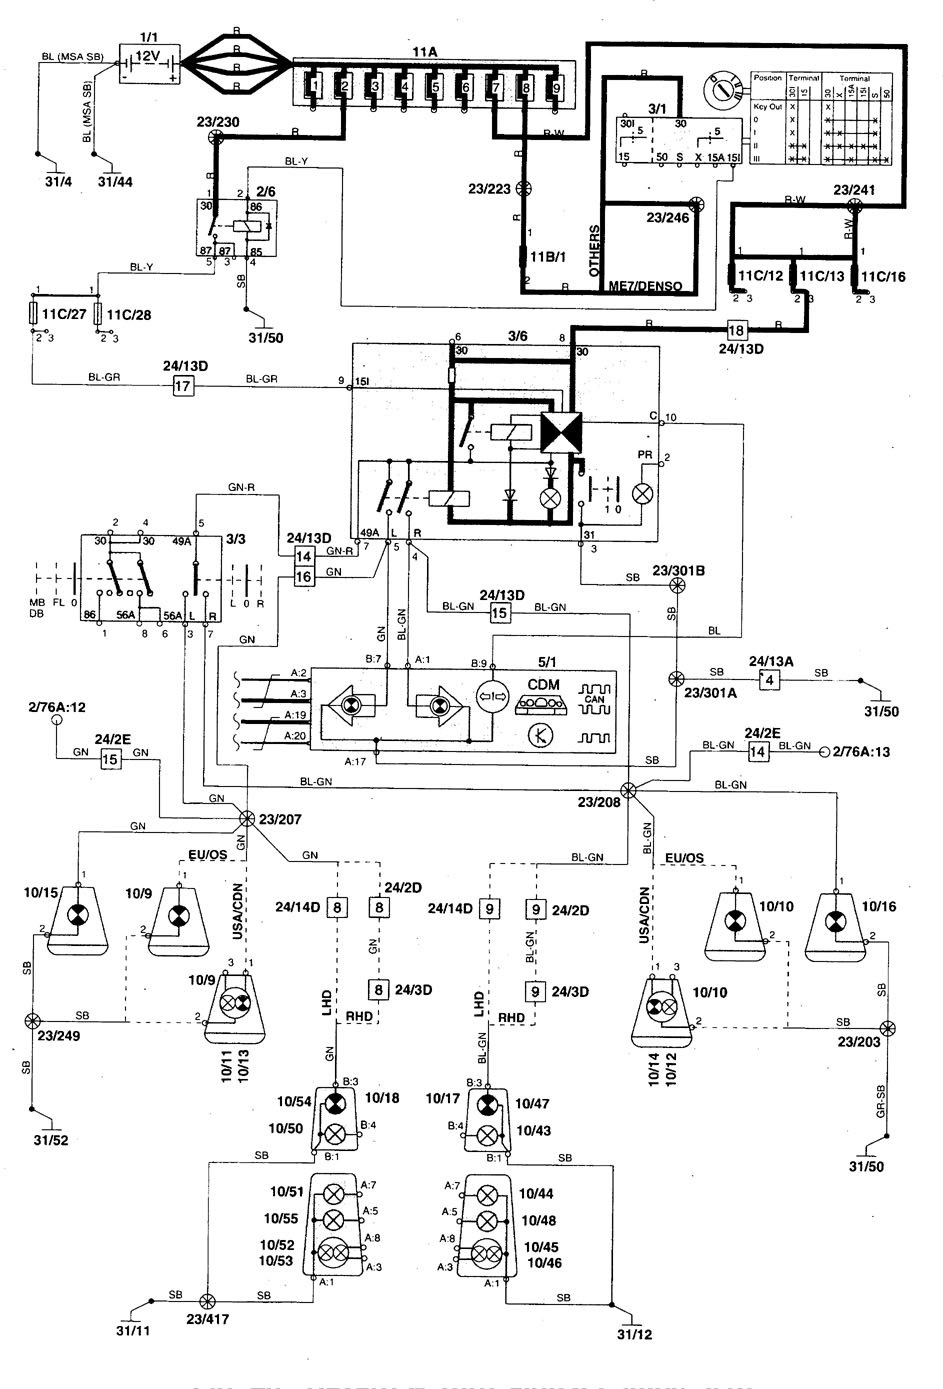 Wiring Diagram Volvo V70 1998 Simple Guide About Truck Diagrams Pdf Will Be A Thing U2022 Rh Exploreandmore Co Uk